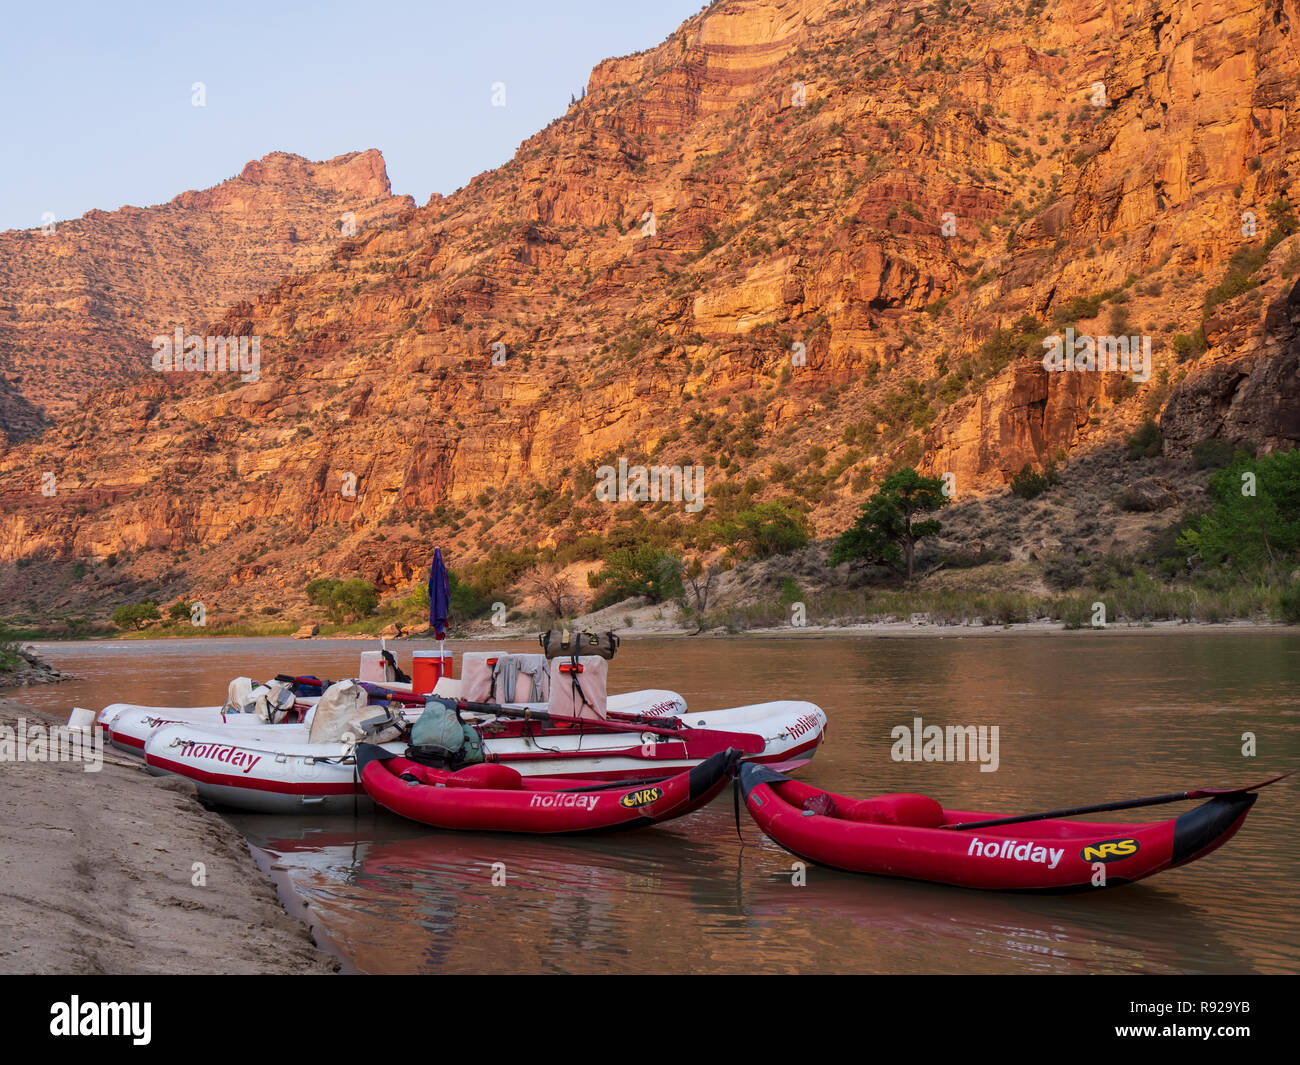 Boats at Lion Hollow campsite, Desolation Canyon north of Green River, Utah. - Stock Image